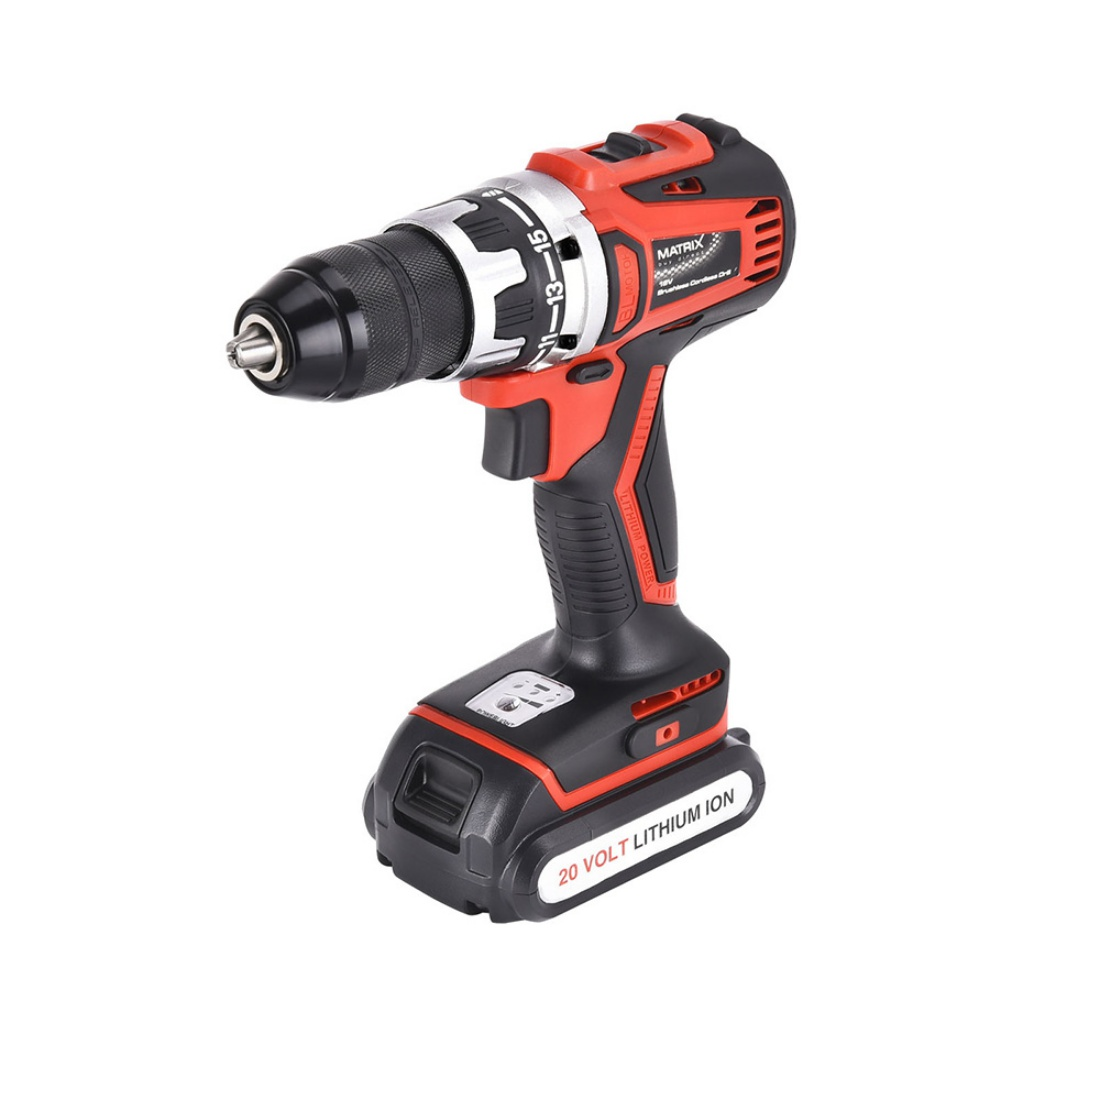 New Matrix 20V Brushless Cordless Drill Li-Ion Lithium Electric Power Tool